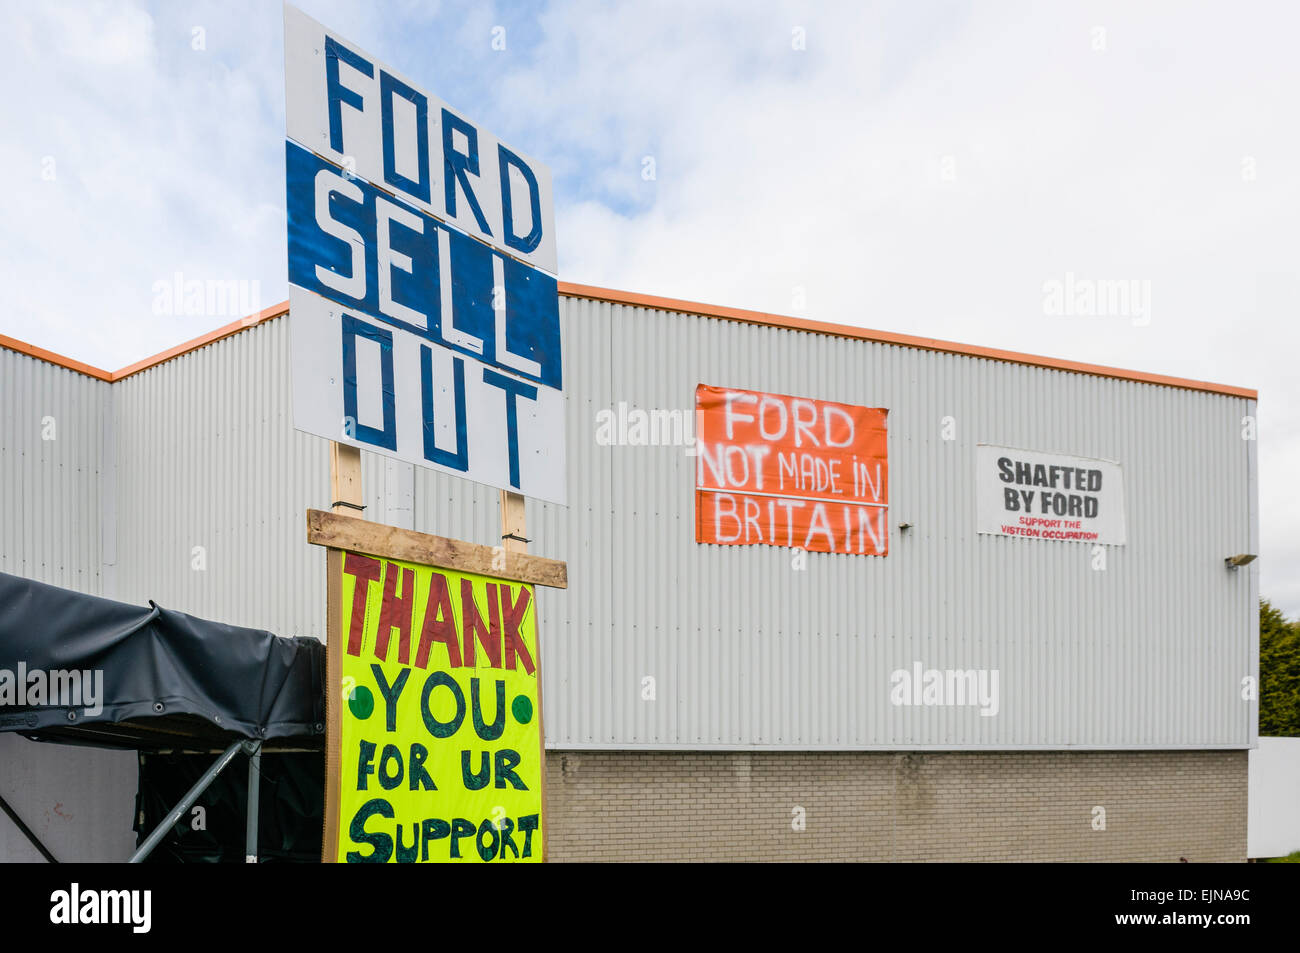 Protest at a factory making parts for ford after the company withdrew contracts